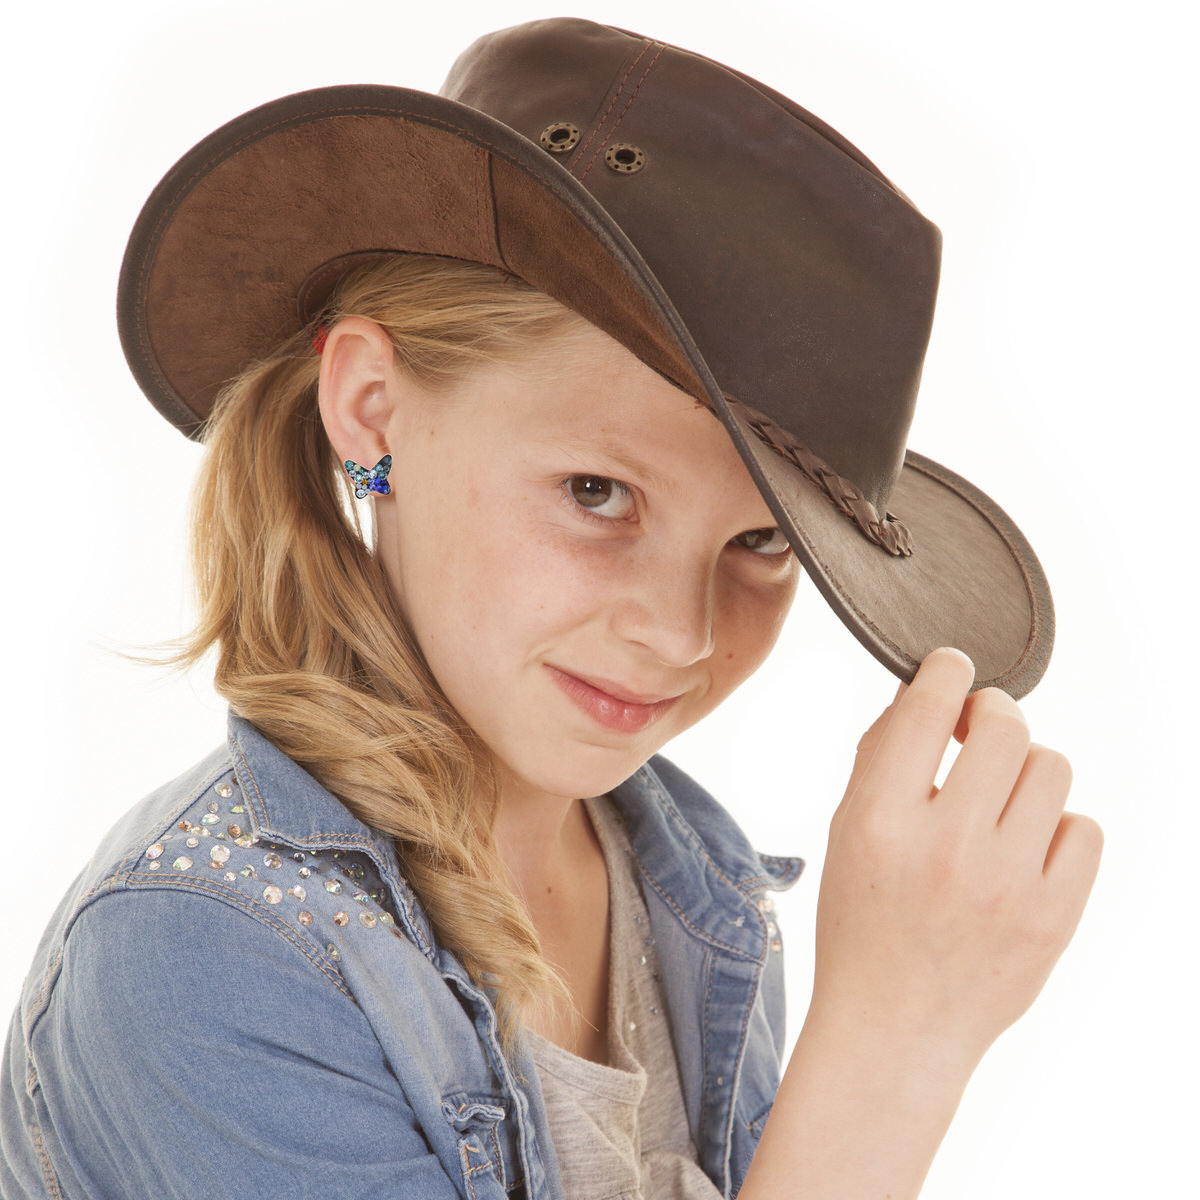 a young girl holding on to the rim of her hat with a small smile on her face..